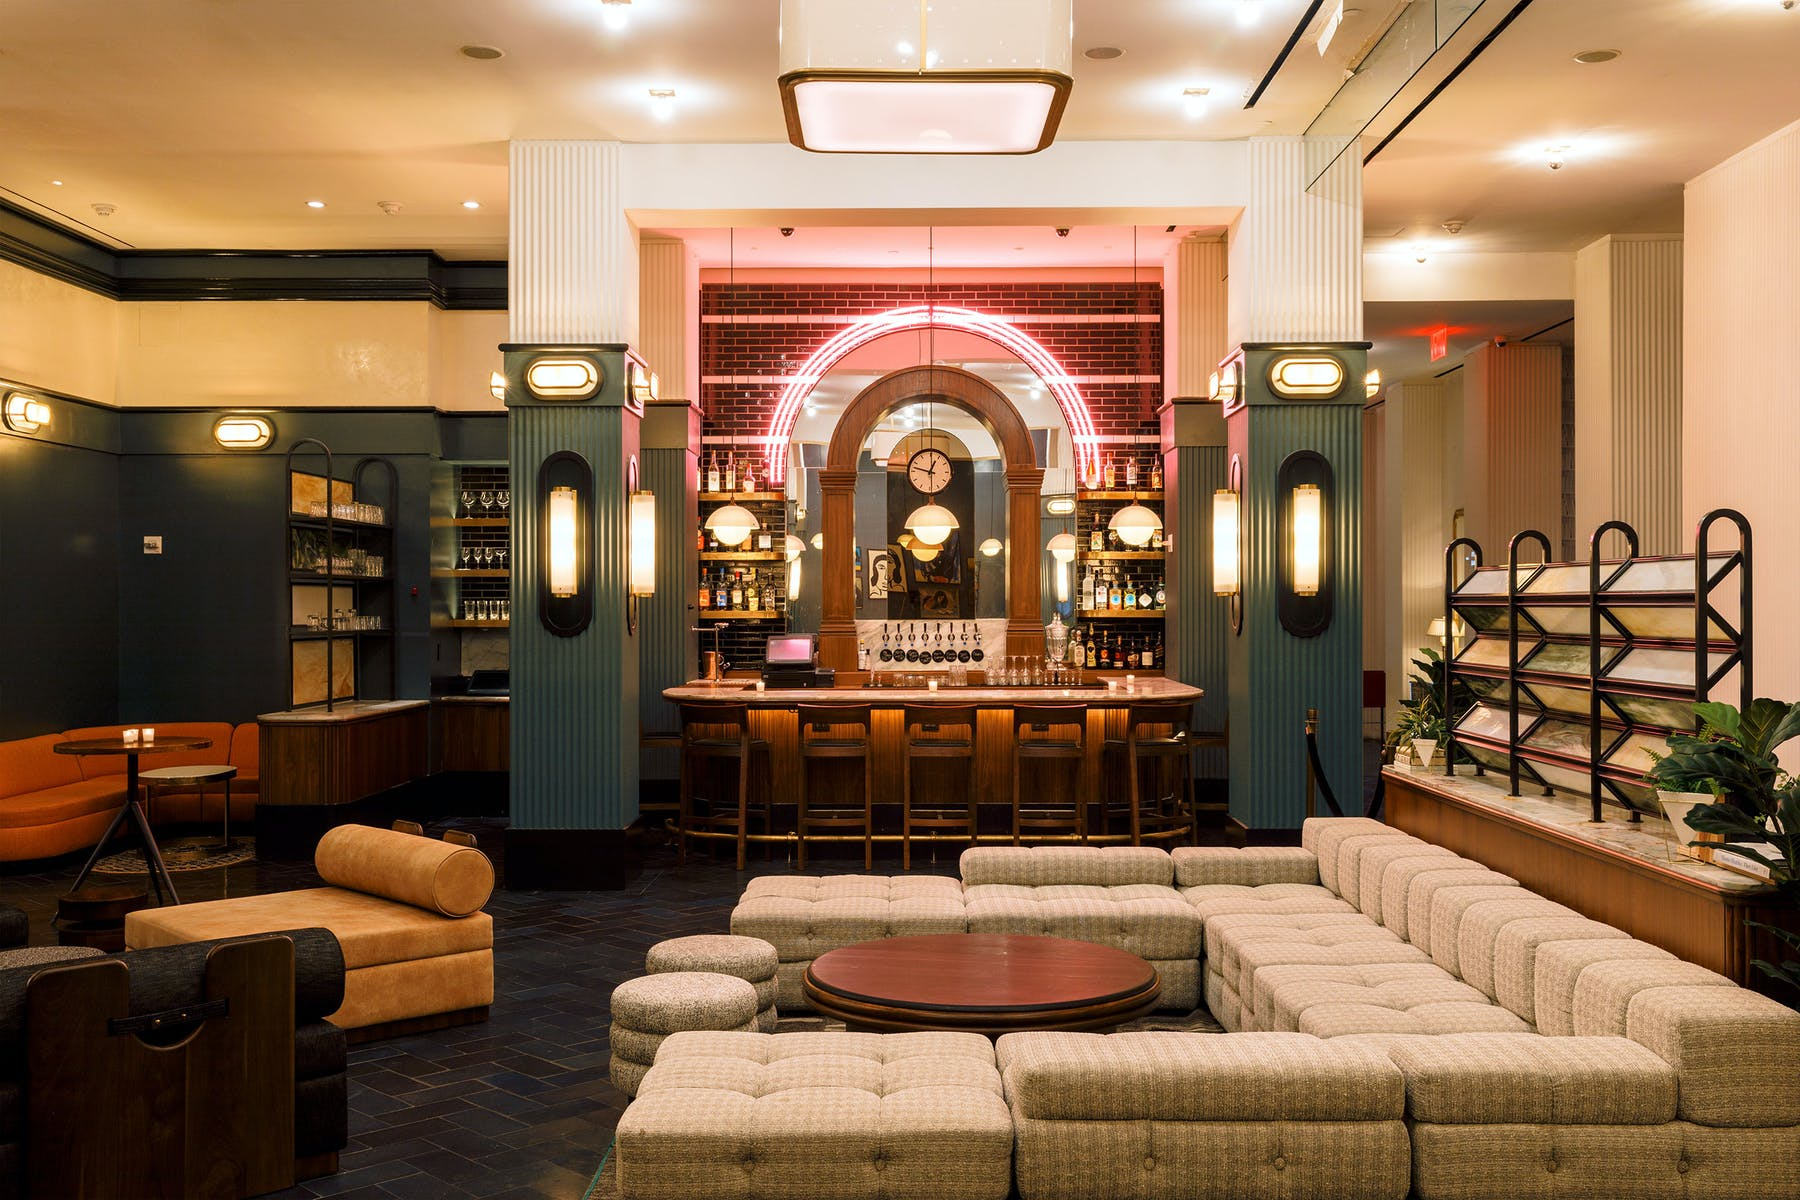 The Lounge at The Redbury Hotel filled with couches and a bar